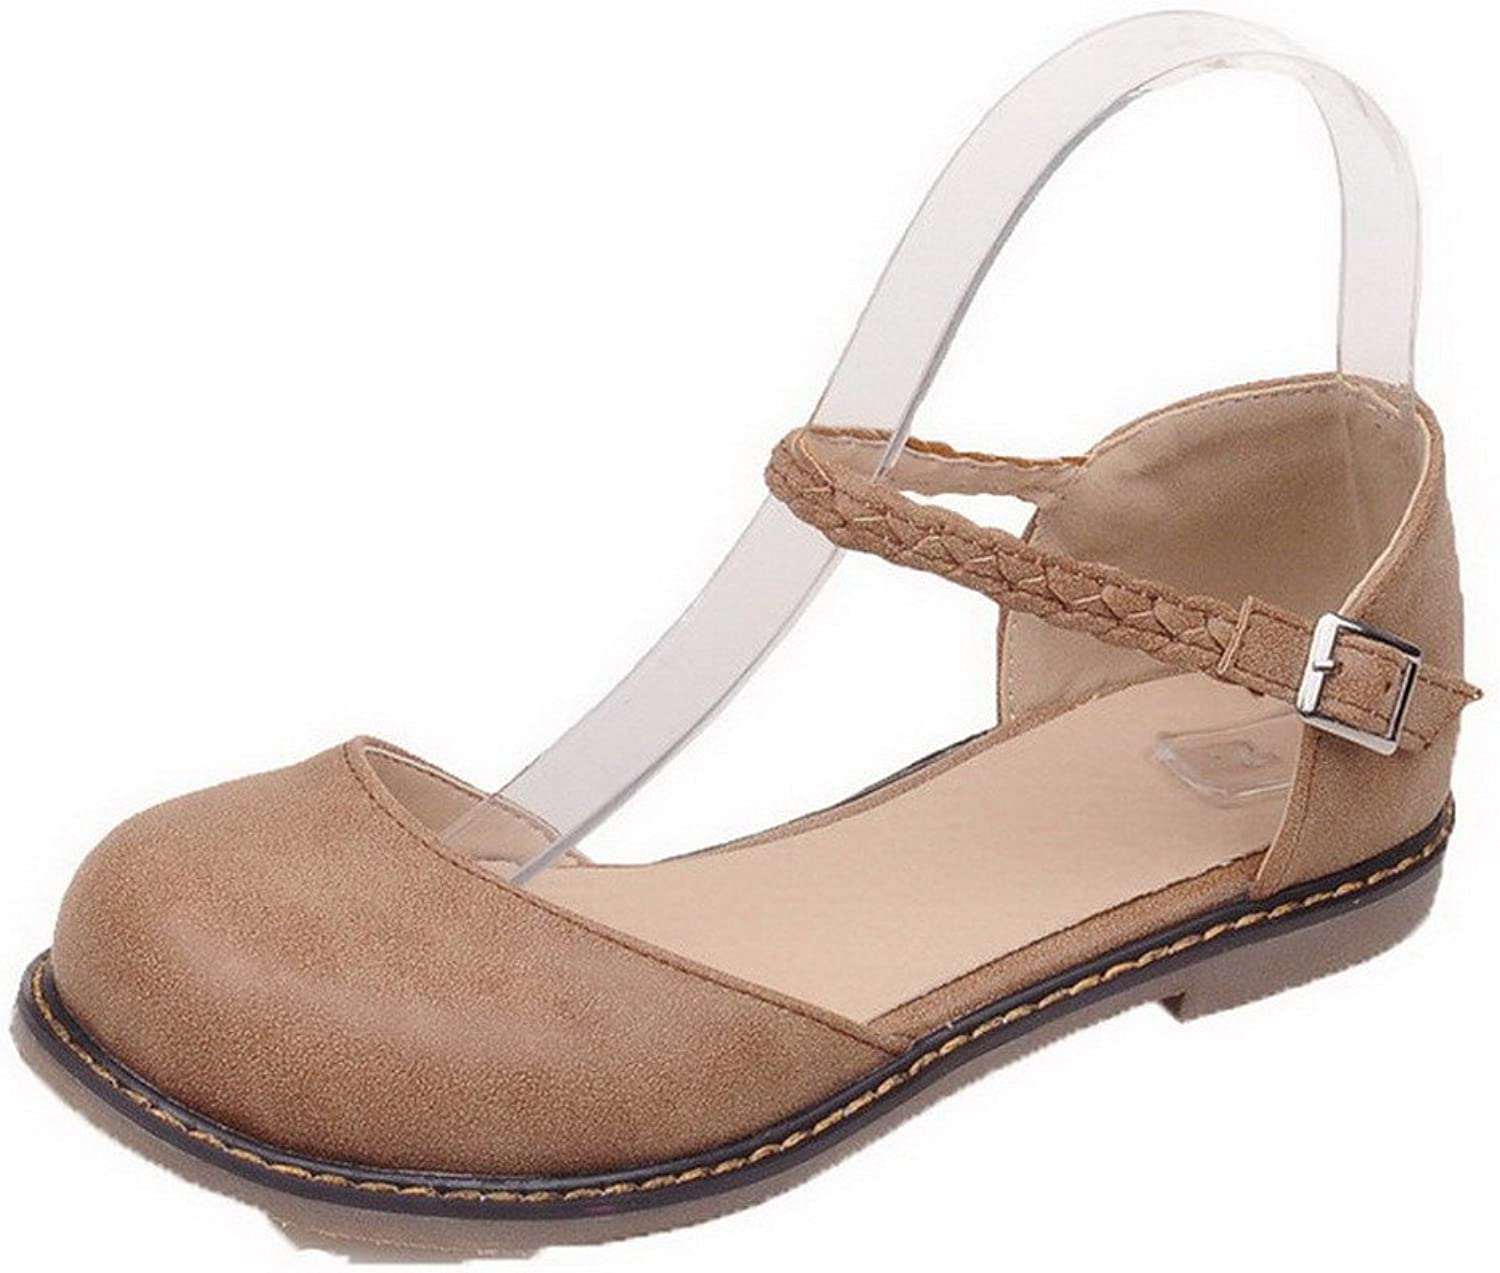 WeiPoot Women's Low-Heels Pu Solid Buckle Closed Toe Sandals, EGHLG005041